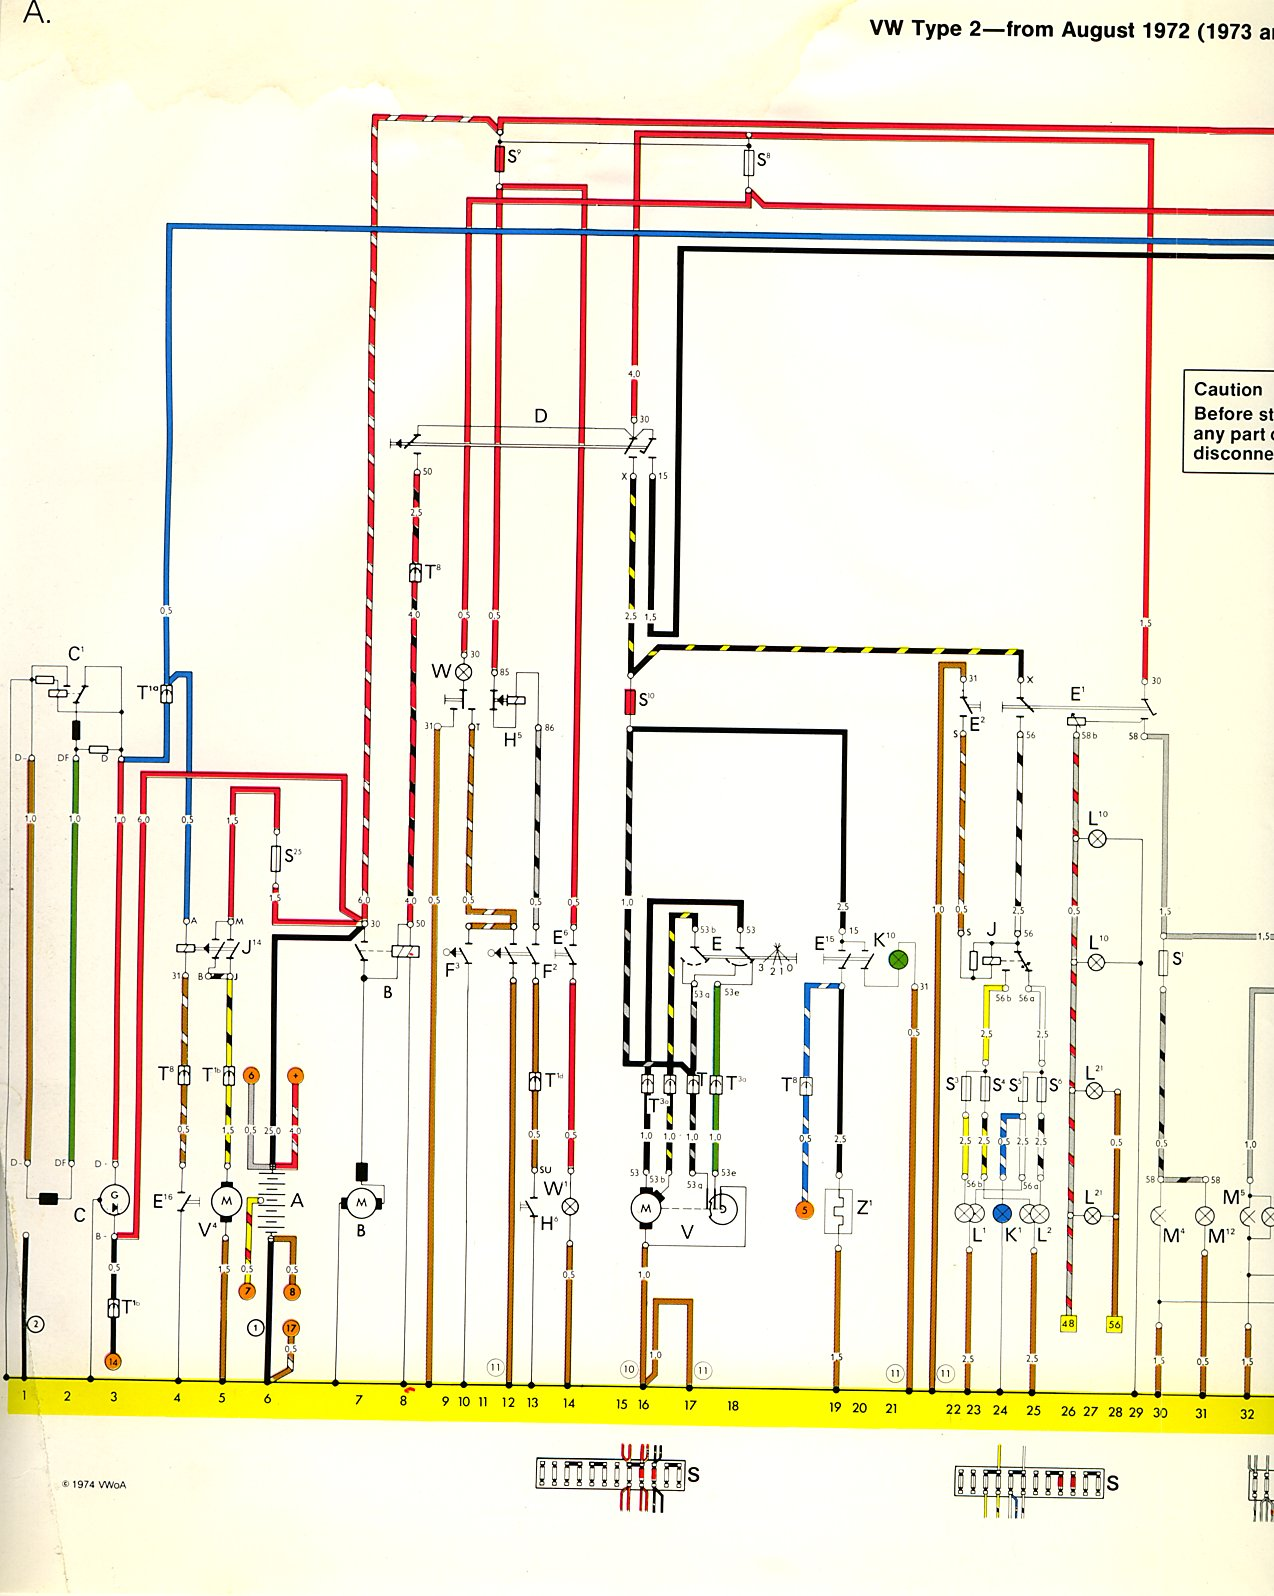 i'm looking for a color-coded wiring diagram for a 1973 vw ... 1973 volkswagen wiring diagram